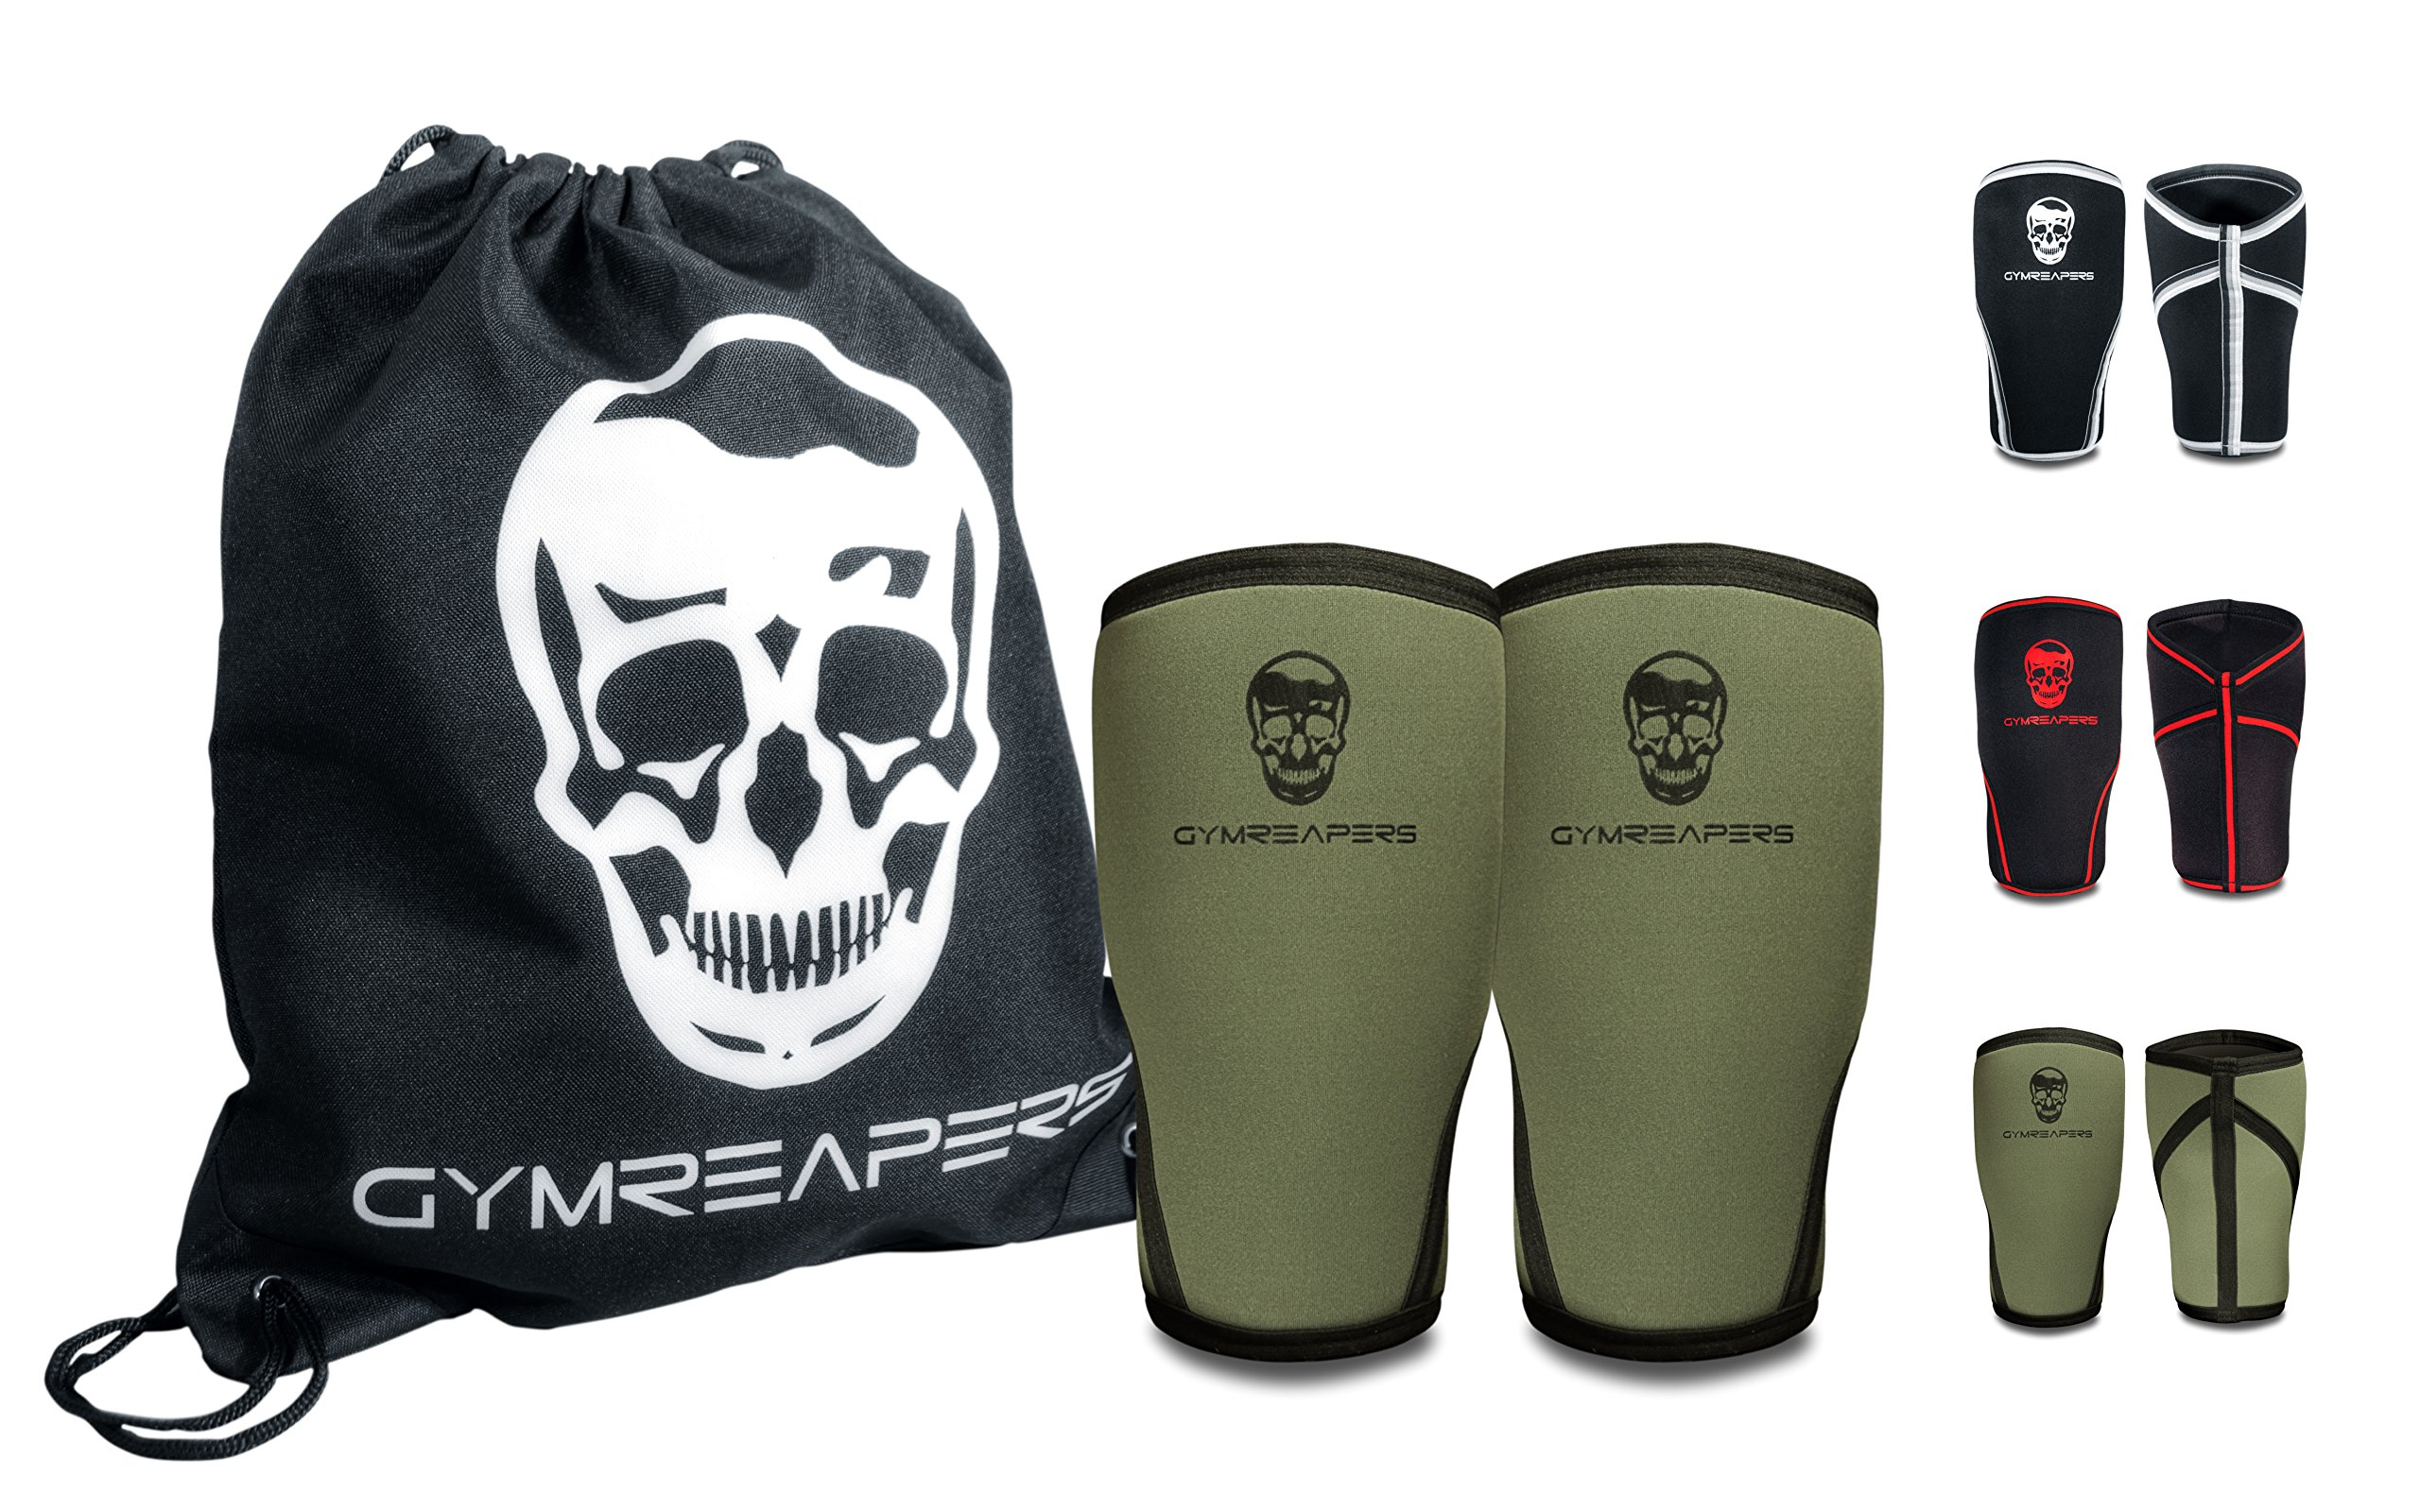 Knee Sleeves (Pair w/ Bag) - Knee Compression Sleeve Support for Squats, Weightlifting, and Powerlifting - Gymreapers 7MM Neoprene Sleeves - 1 Year Warranty (Military Green/Black, Large)